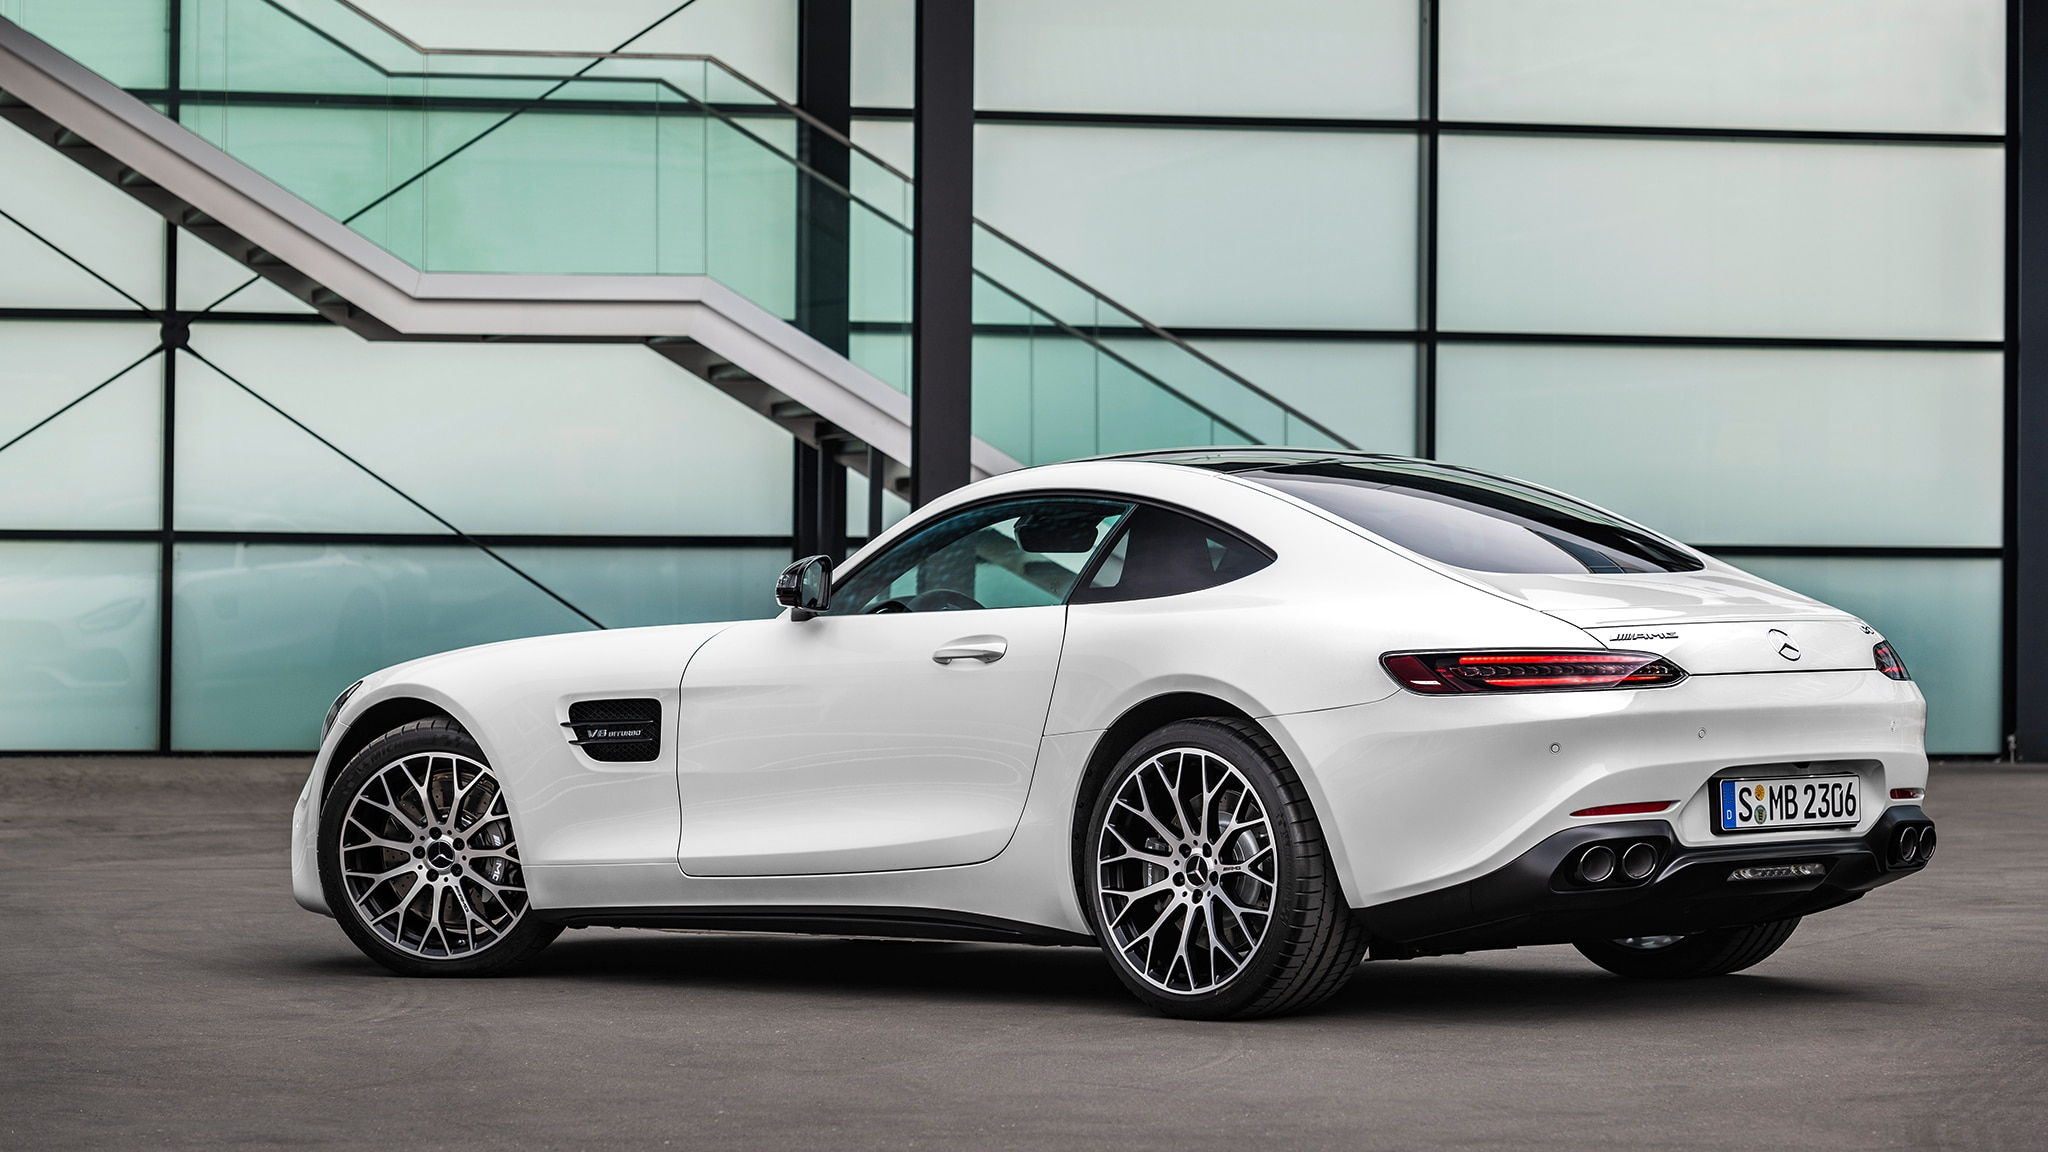 92 The Best 2020 Mercedes AMG GT Review